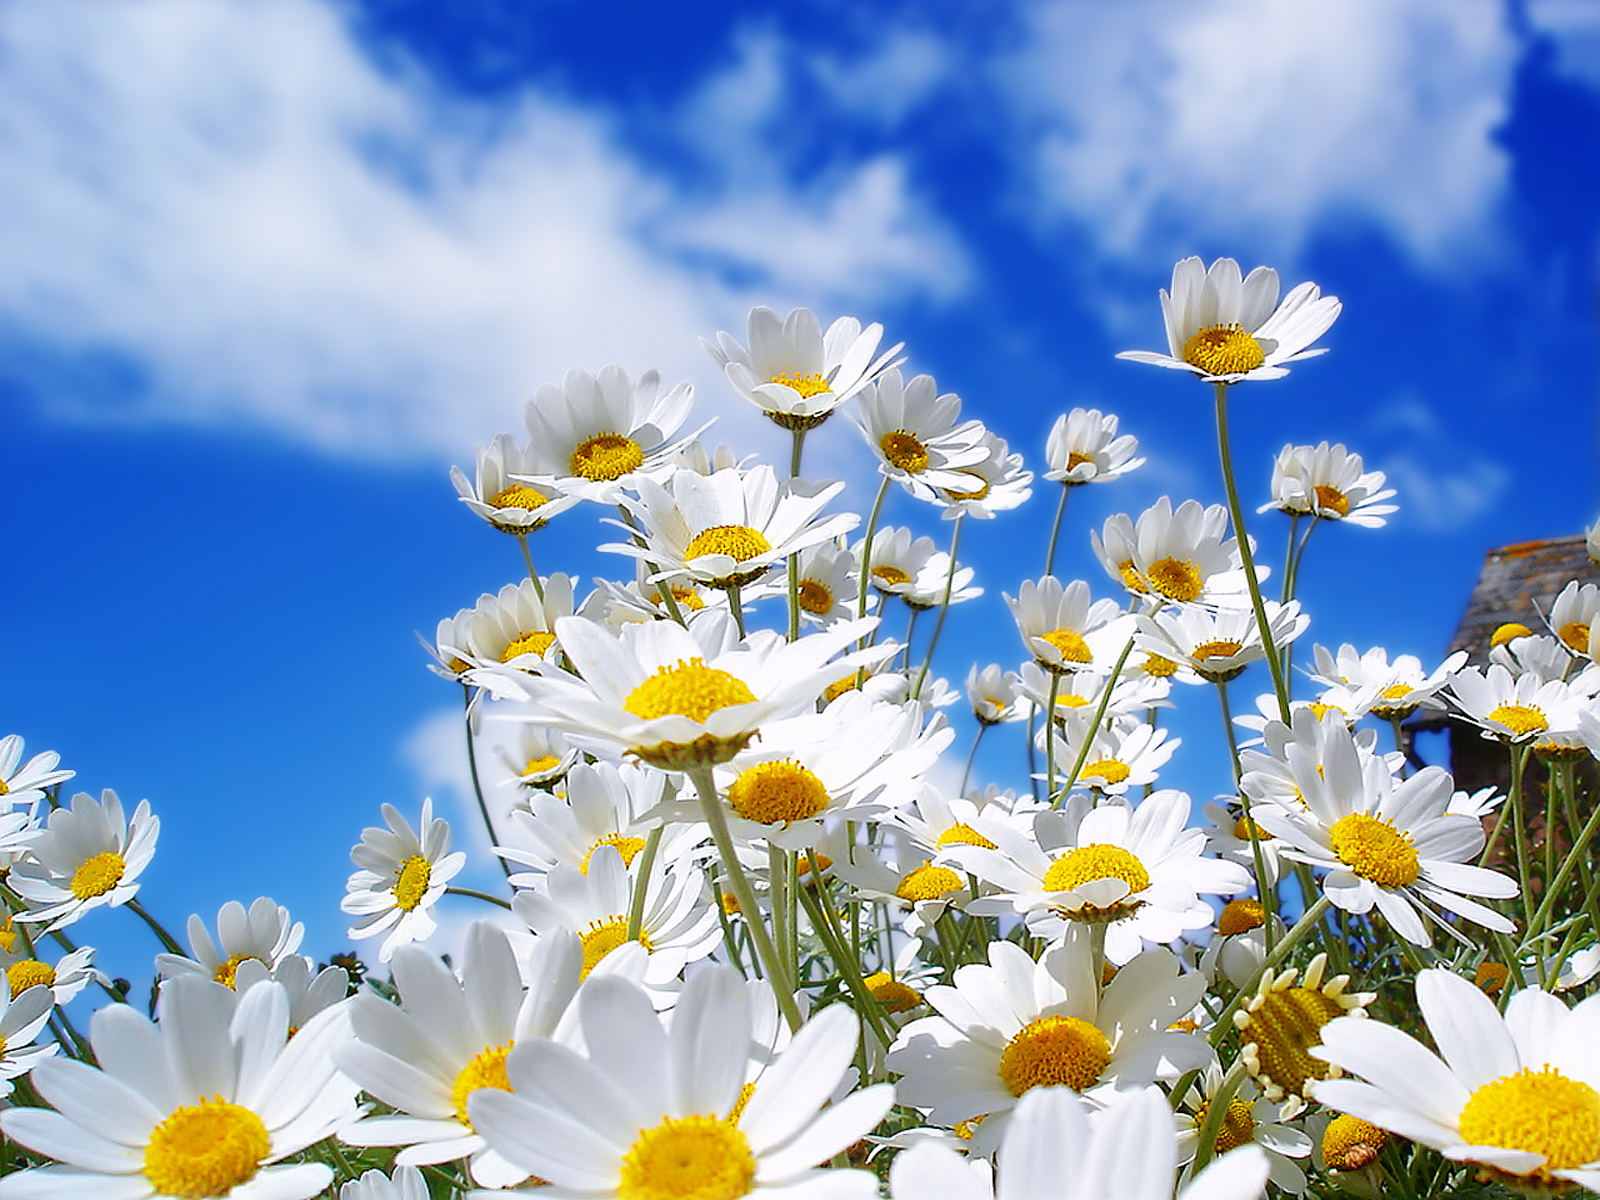 Hd wallpaper net - Daisies Desktop Wallpaper